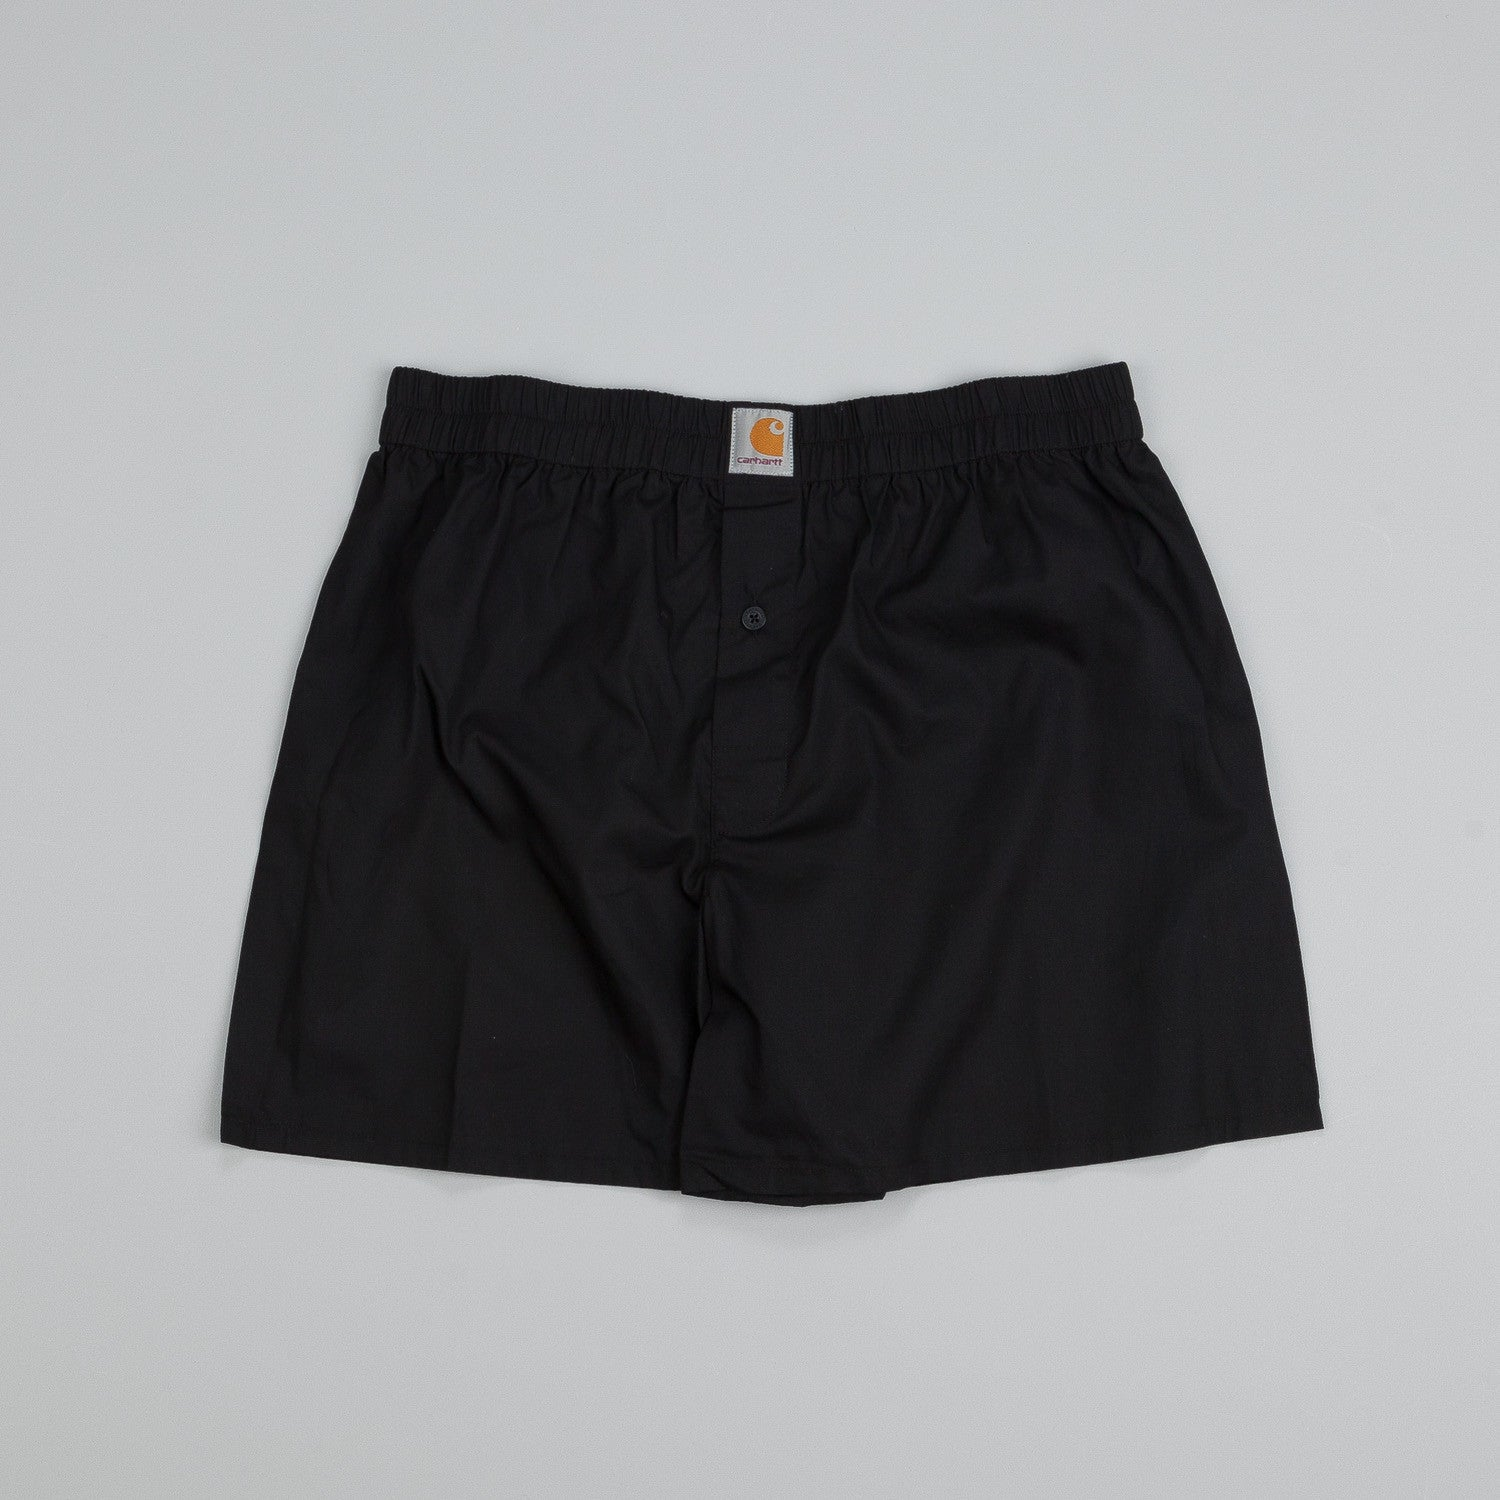 Carhartt Boxer Shorts Black